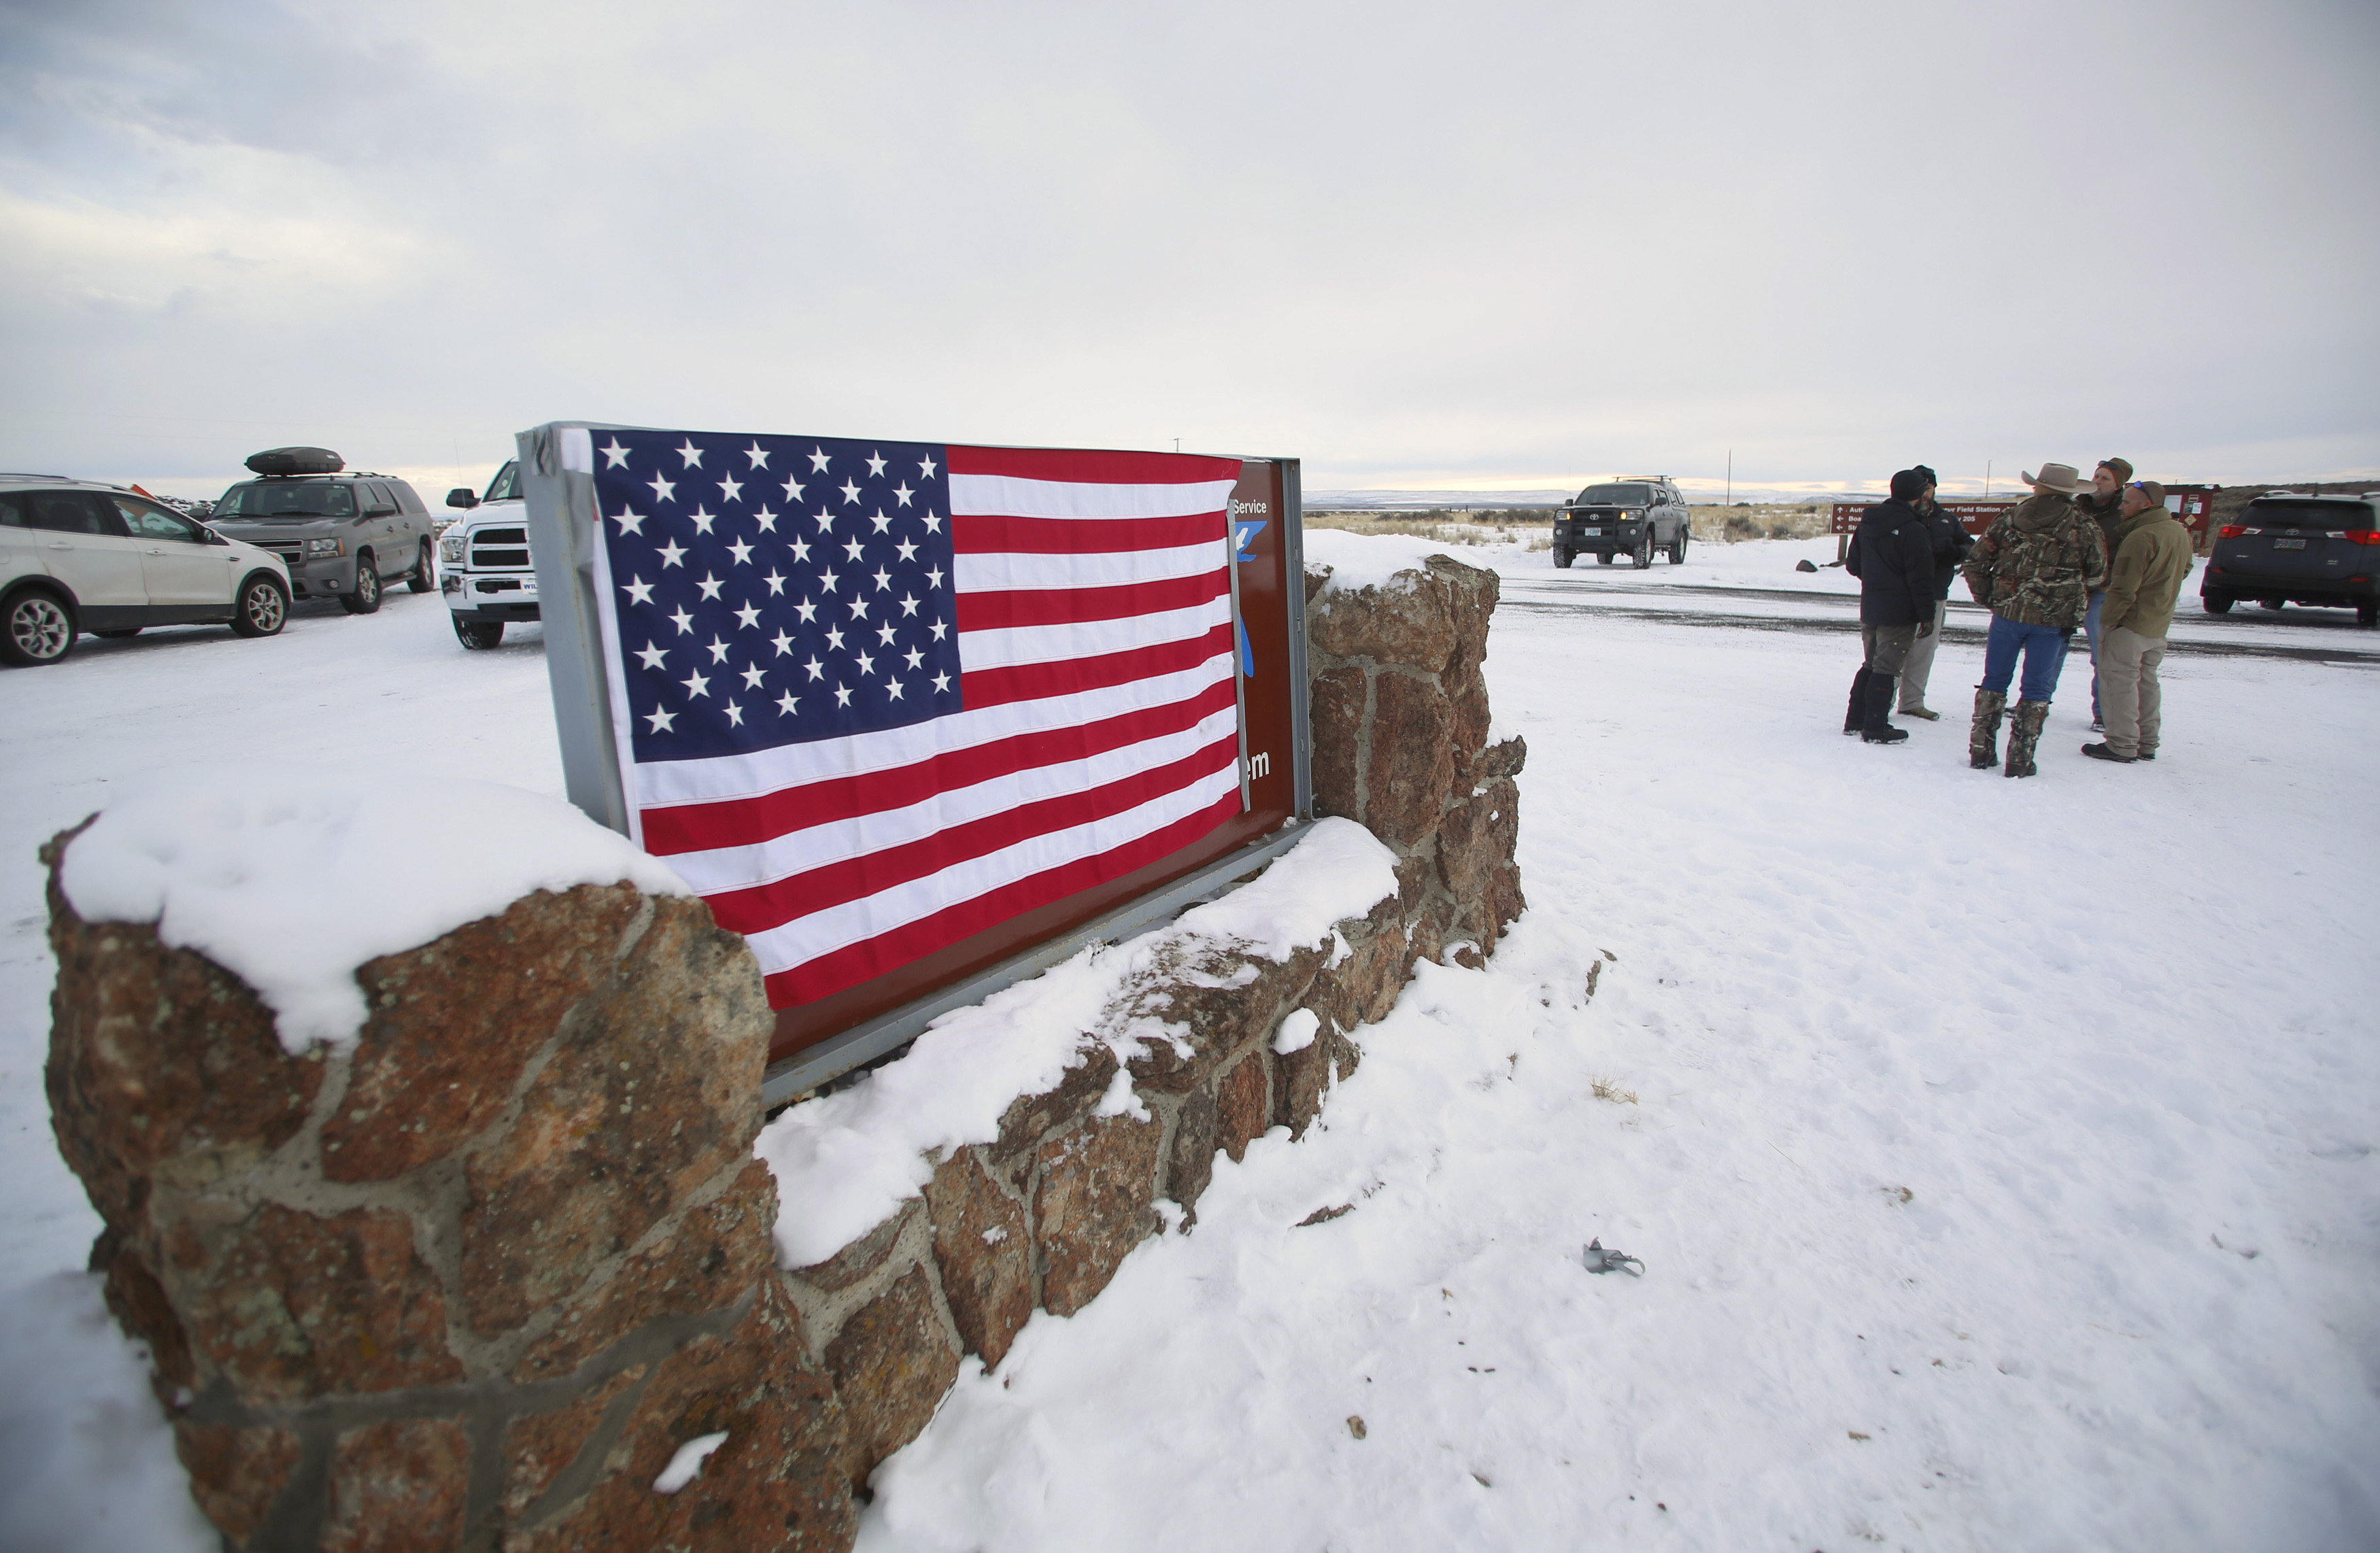 FILE PHOTO: A U.S. flag covers a sign at the entrance of the Malheur National Wildlife Refuge near Burns, Oregon, U.S. January 3, 2016. REUTERS/Jim Urquhart/File Photo